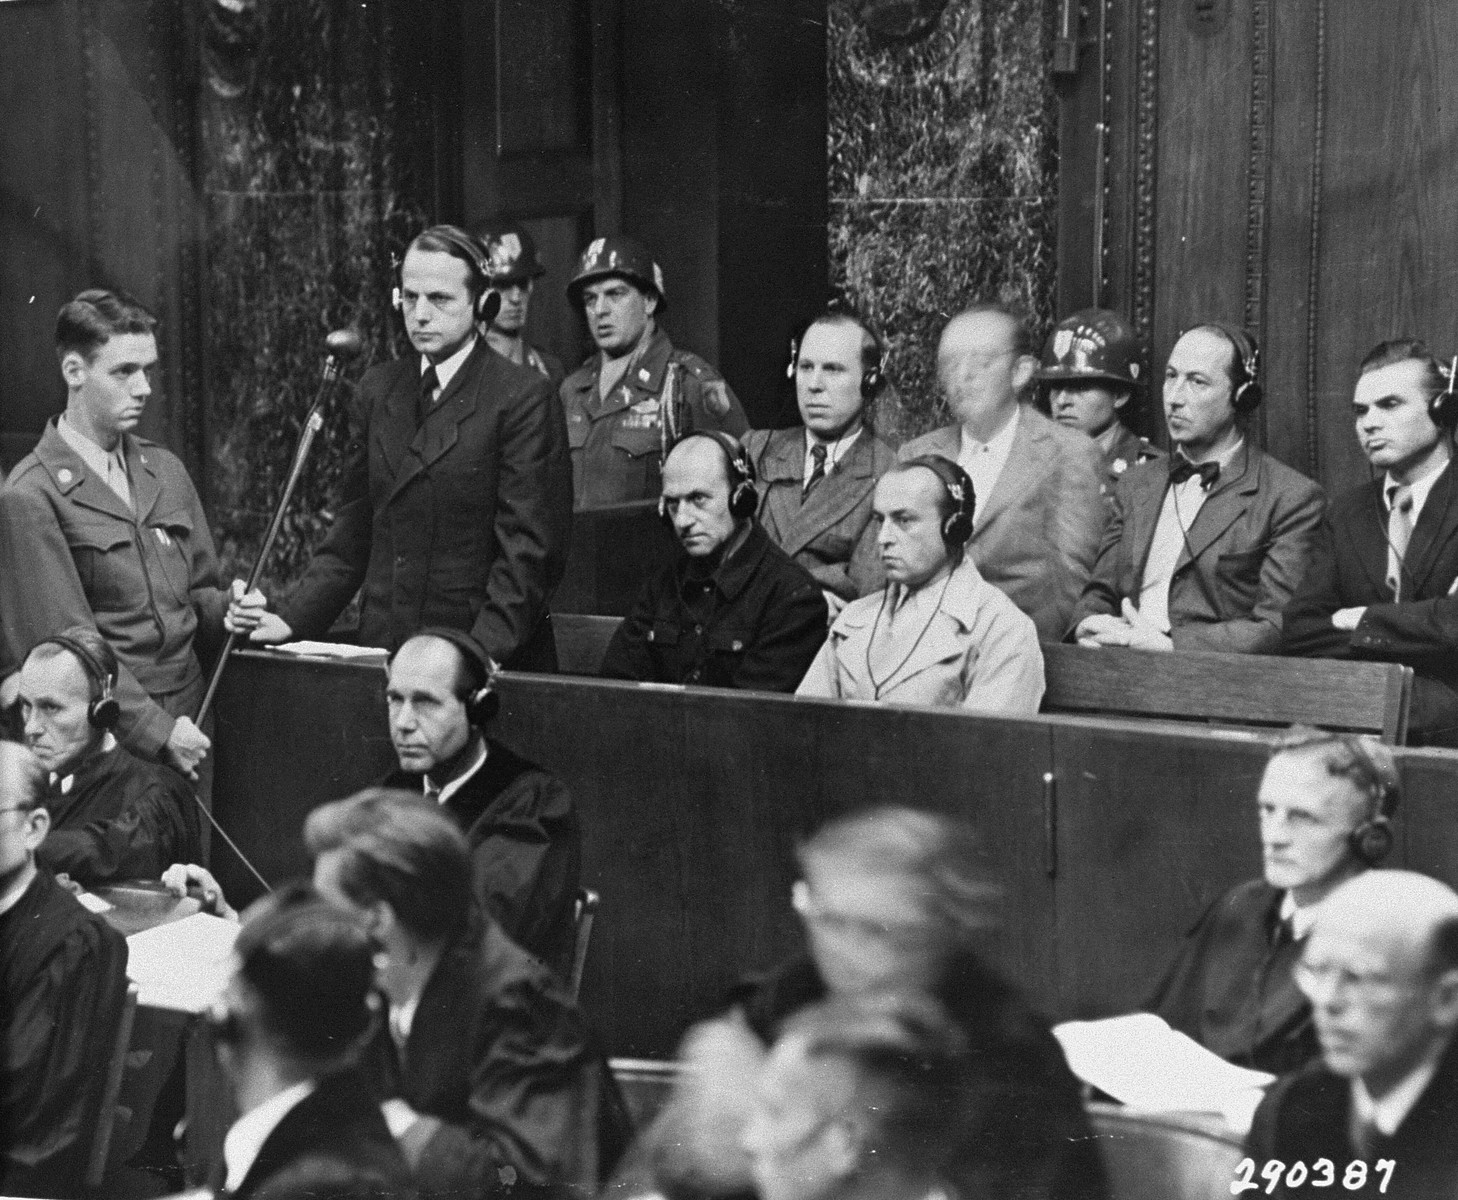 SS-Gruppenfuhrer Otto Ohlendorf, commander of Einsatzgruppe D, pleads not guilty during the Einsatzgruppen trial, Nuremberg, 15 September 1947. He was executed in 1951. Ohlendorf pleads not guilty.jpg